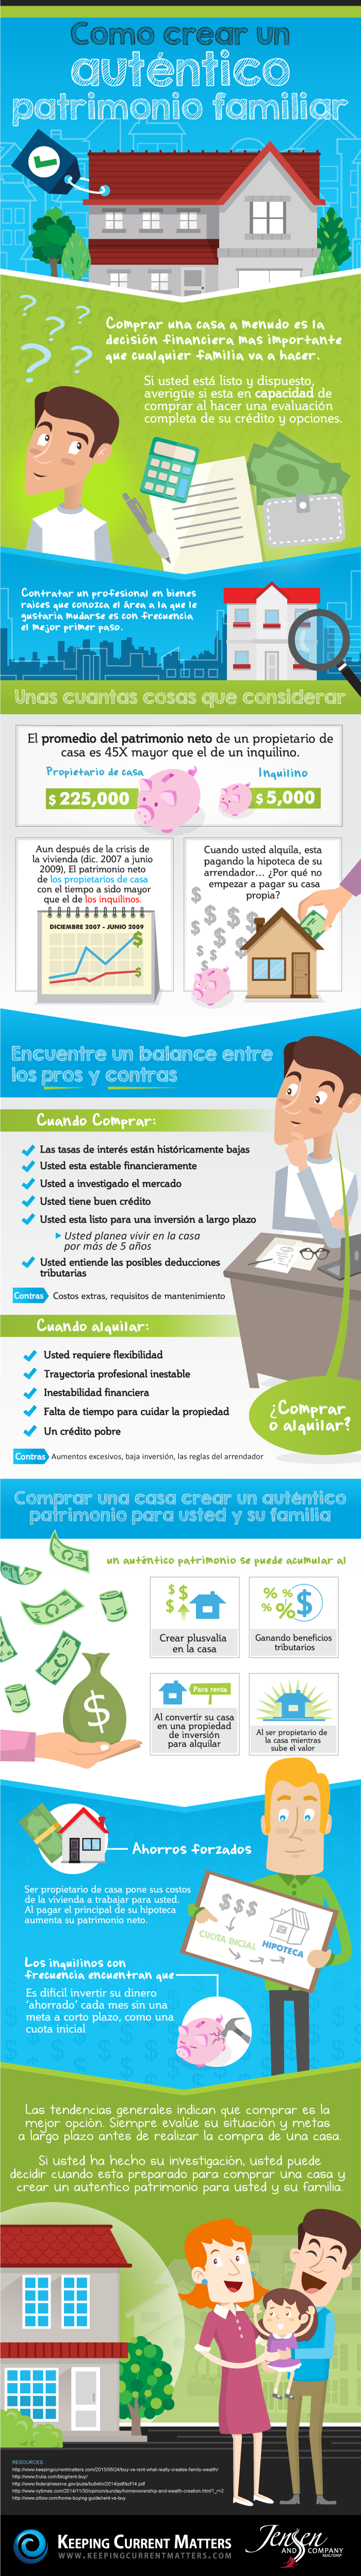 How-to-Create-Real-Family-Wealth-Infographic-Spanish-Version